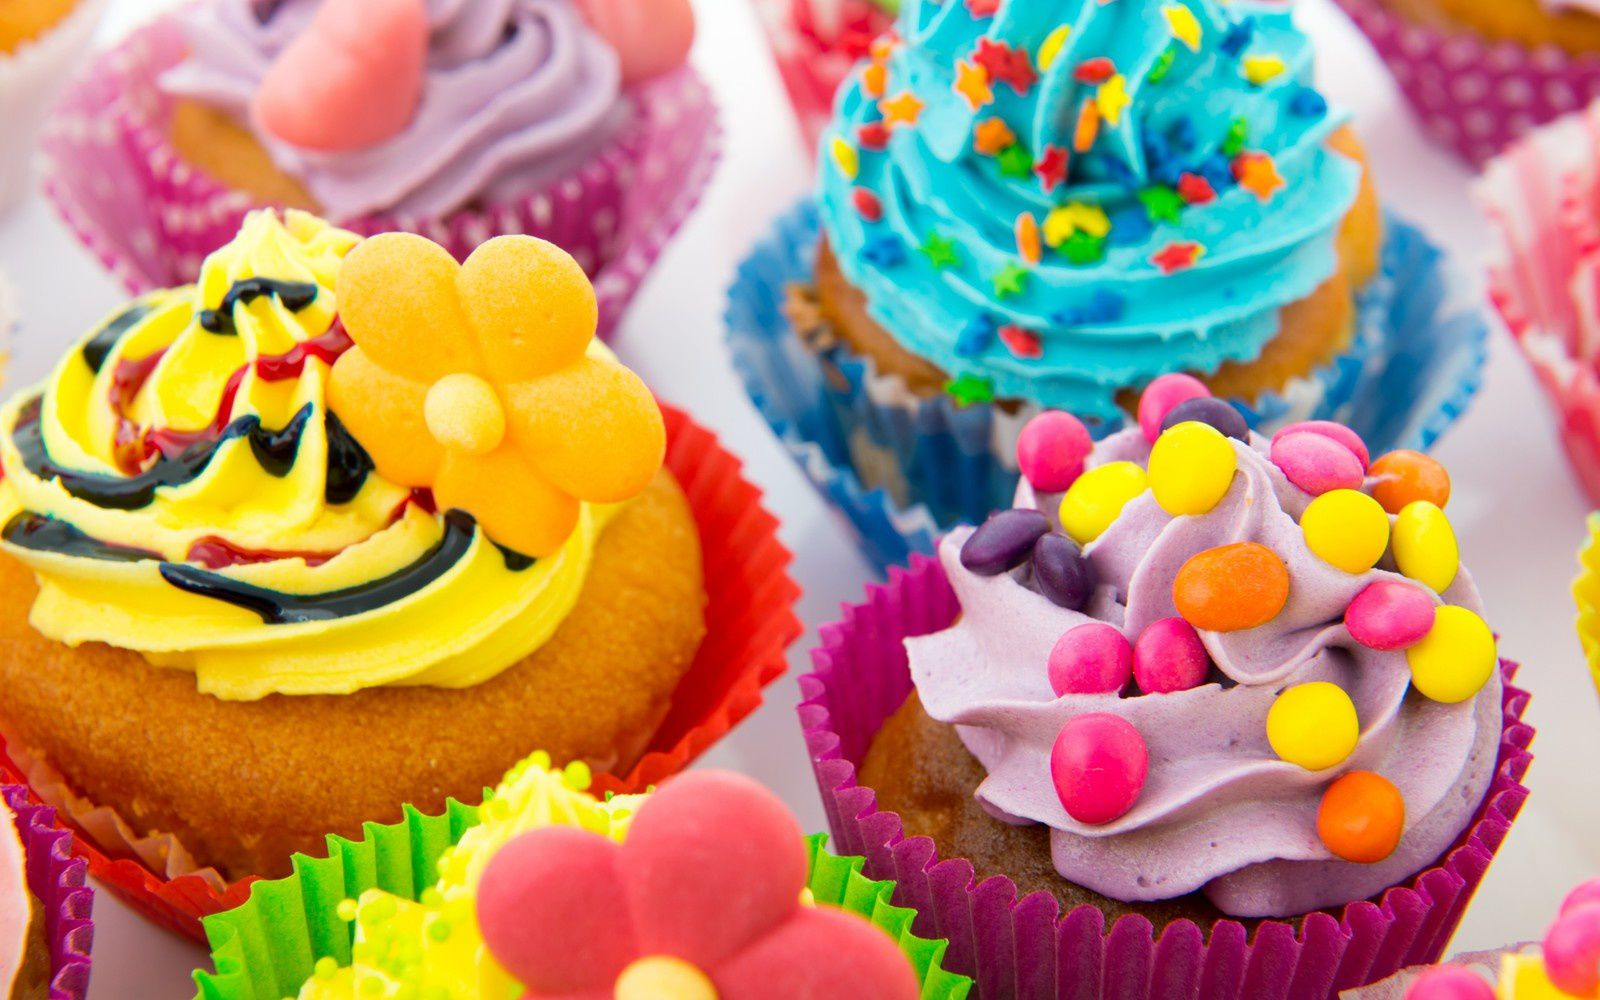 Dessert - Cupcakes - Wallpapers - Free